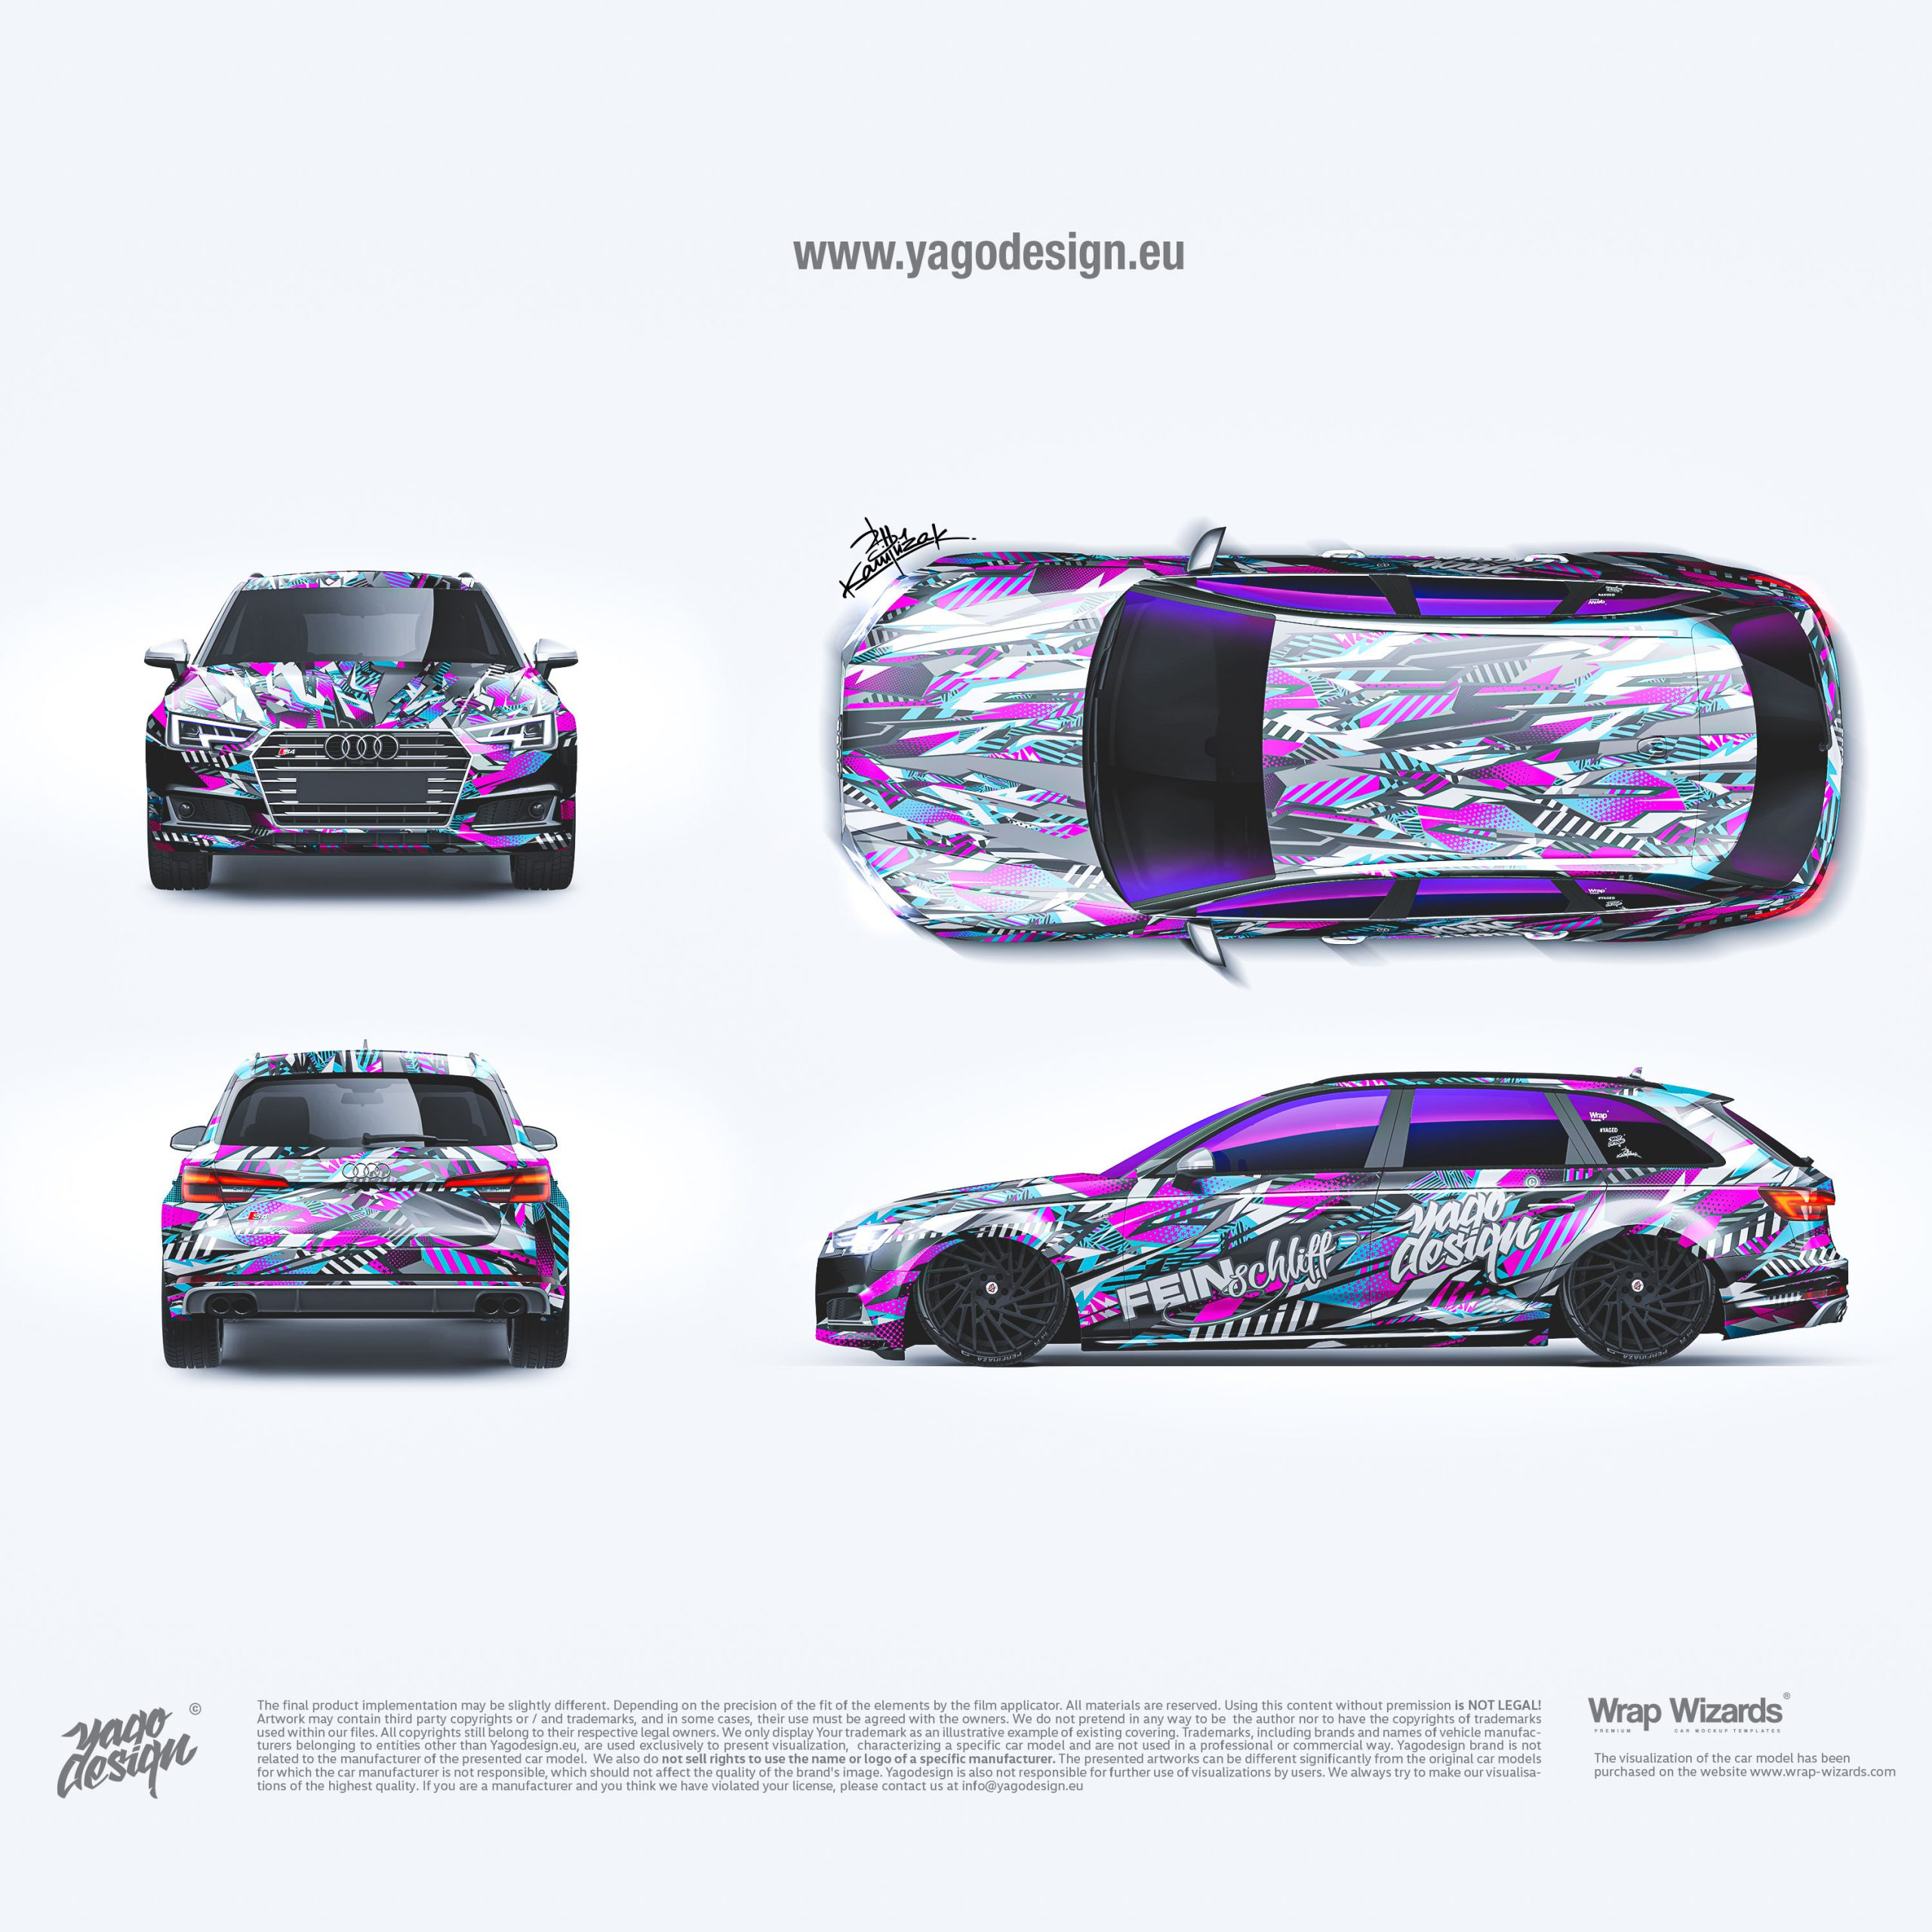 Audi-S4-2017-Car-Wrapping-Design-by-Yagodesign2